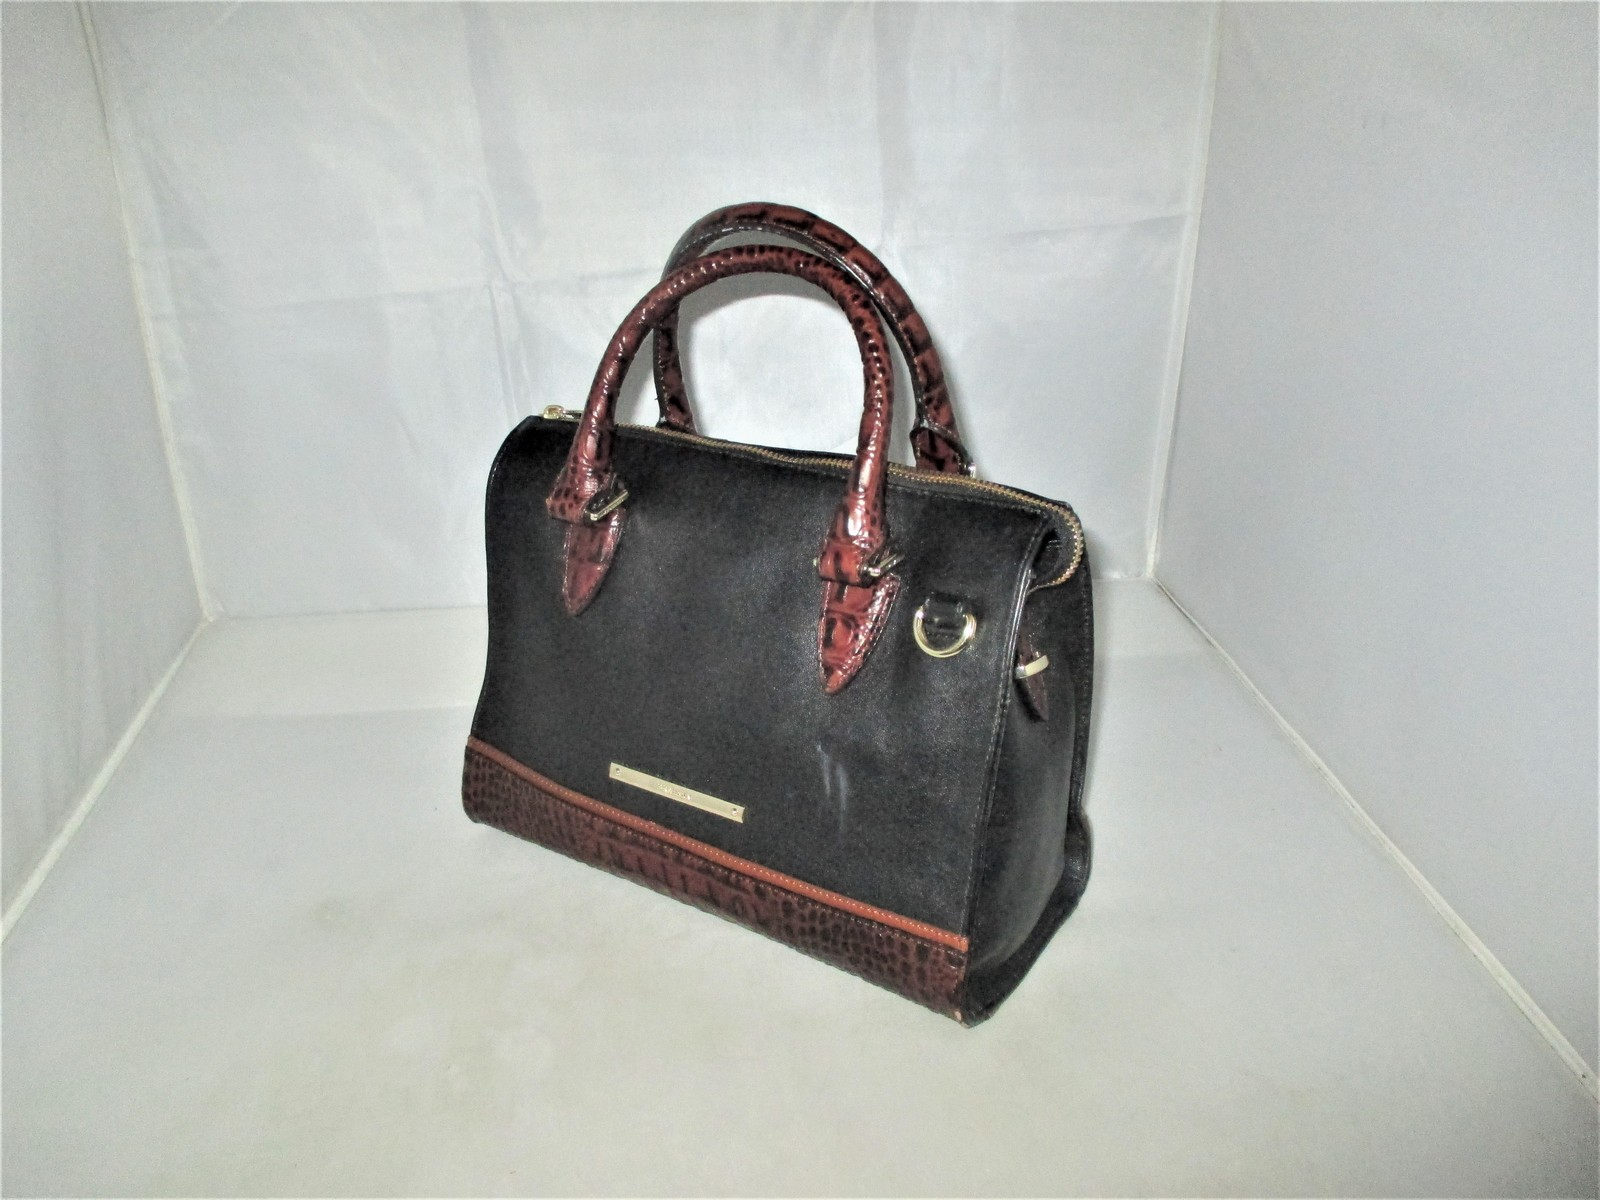 Brahmin Tuscan Tri-Texture Anywhere Convertible Satchel, Shoulder Bag,Tote $255 image 4